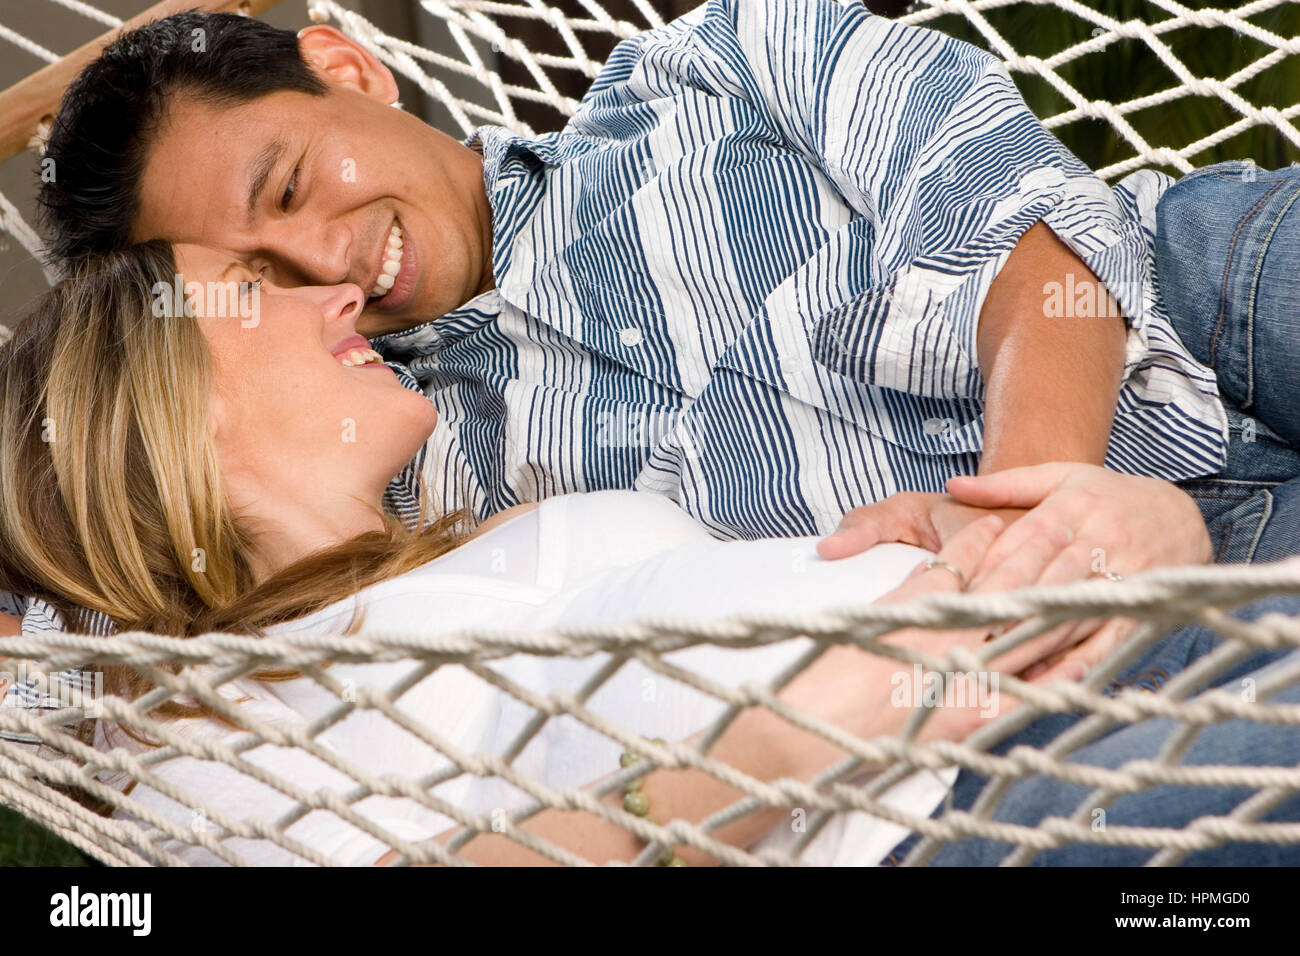 Husband embraceing his pregnant wife's belly lying in a hammock. - Stock Image